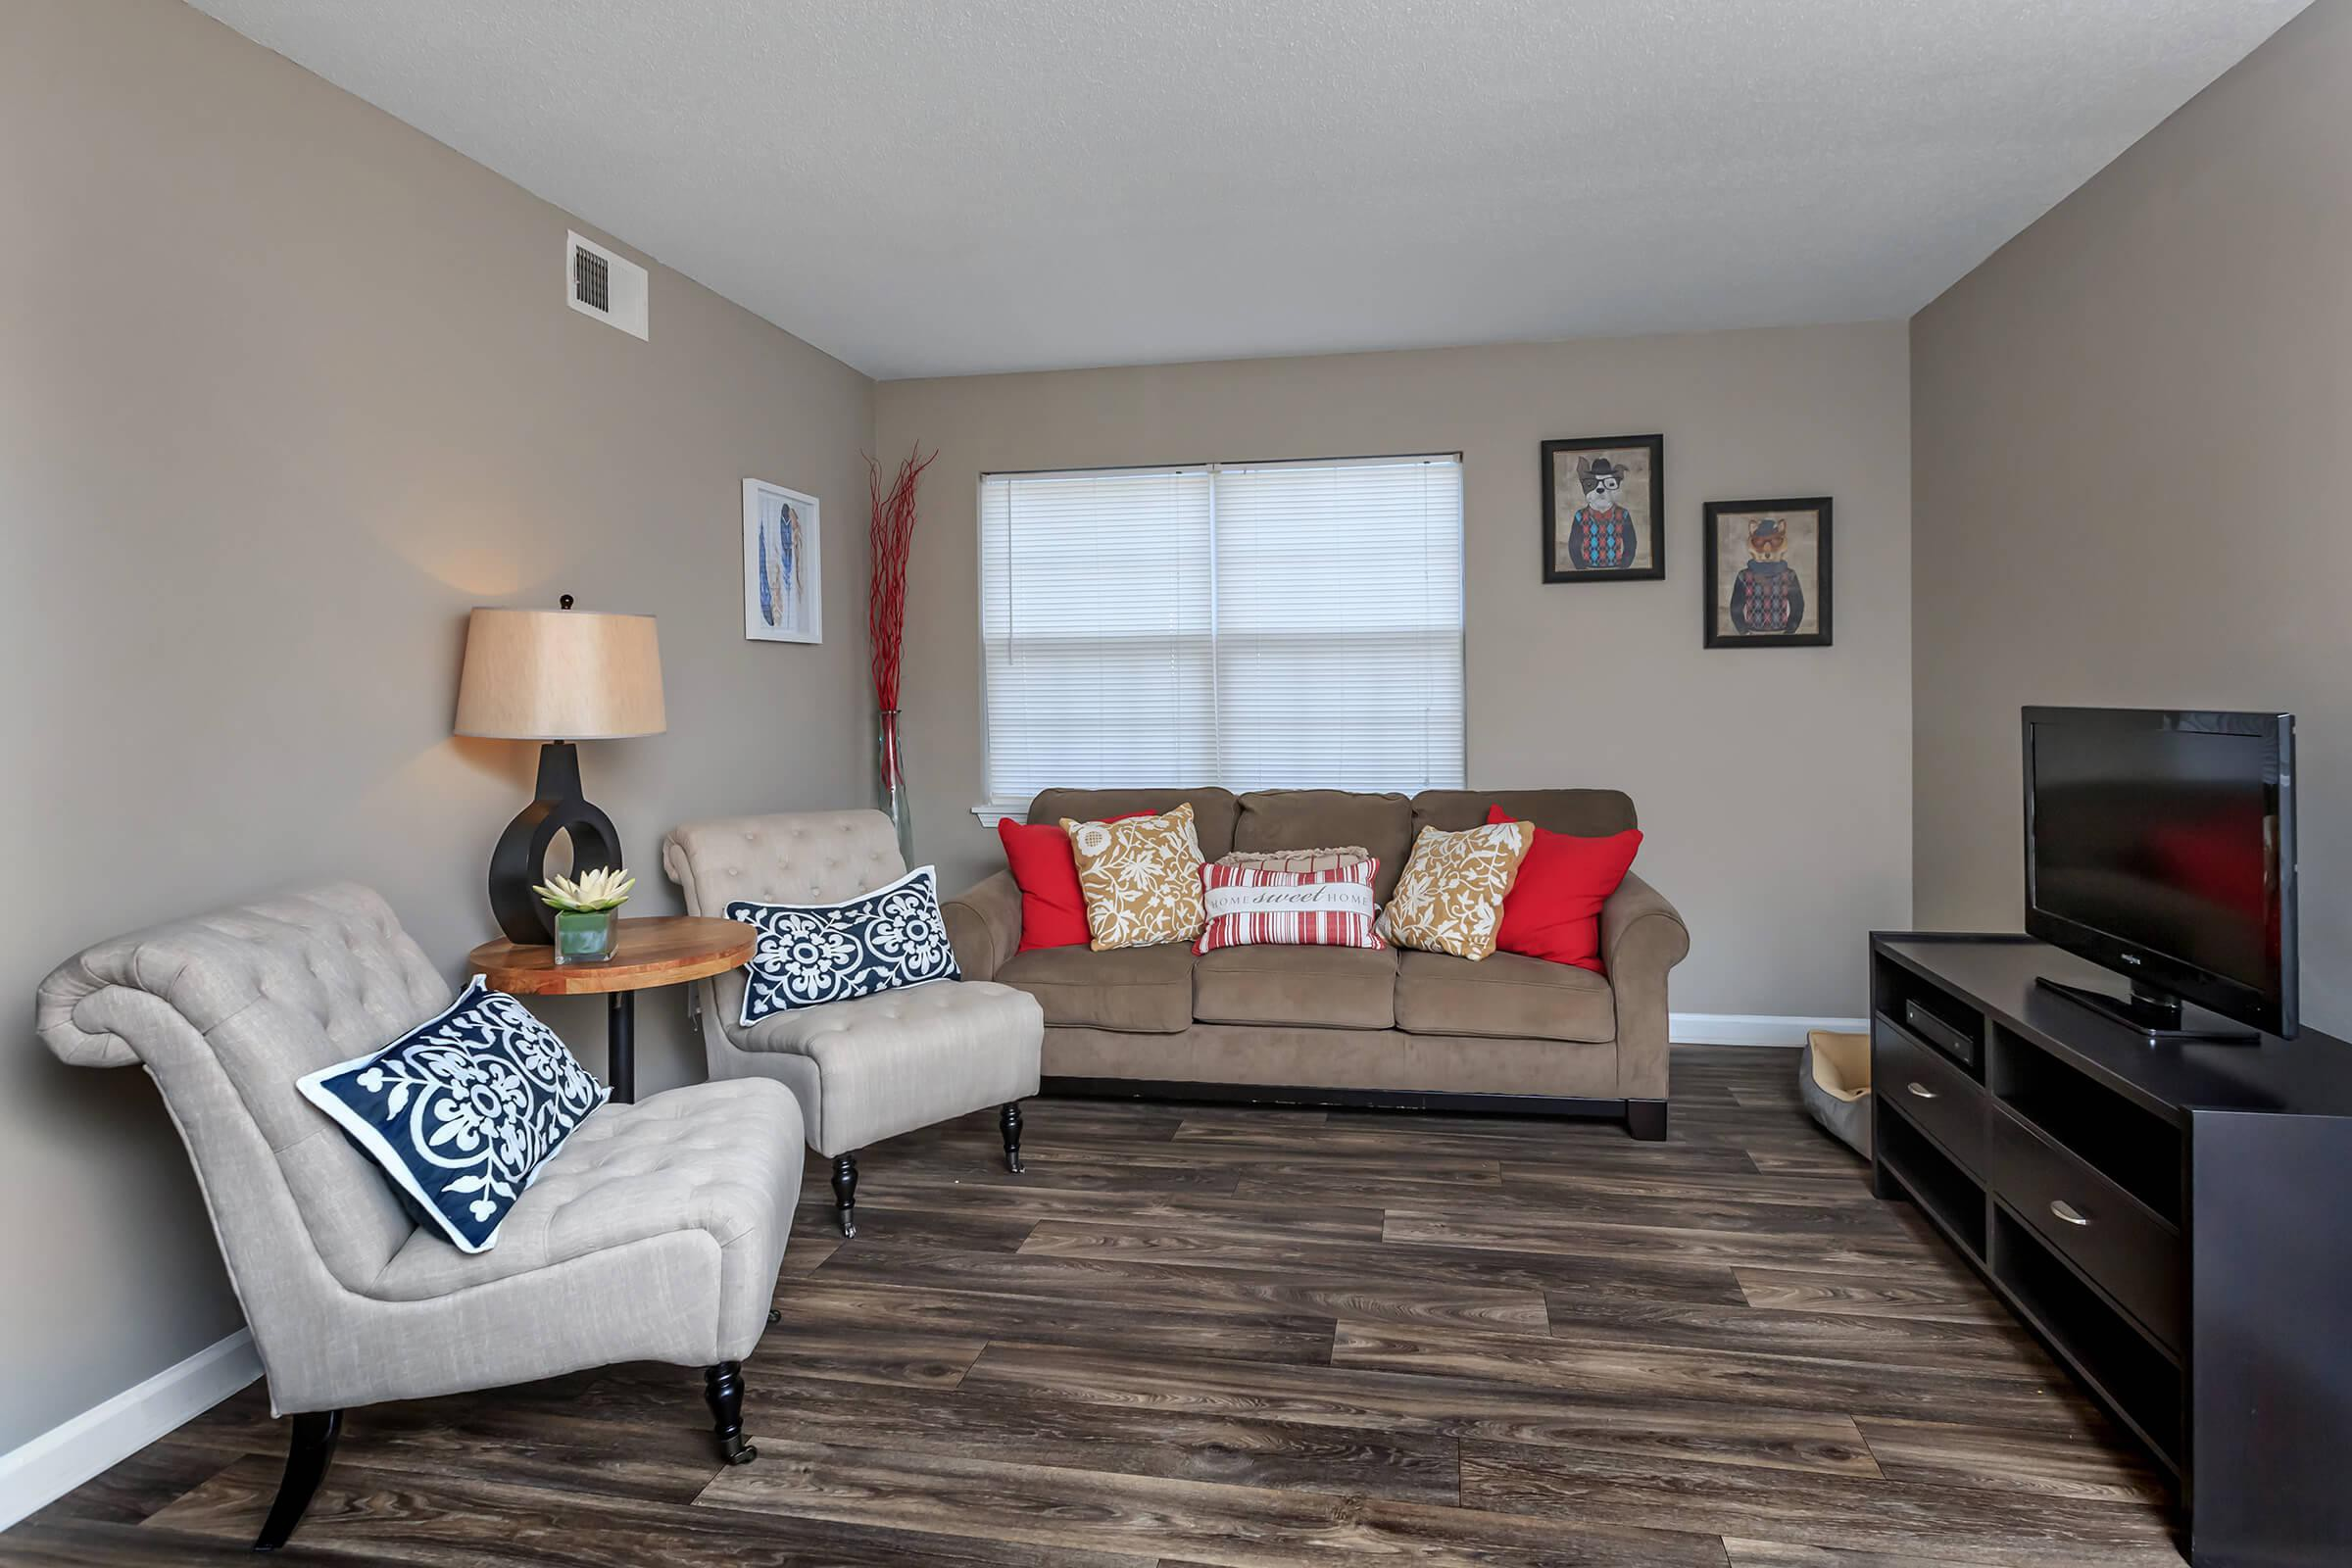 Apartments Near Austin Peay Eagles Crest at Durrett for Austin Peay State University Students in Clarksville, TN